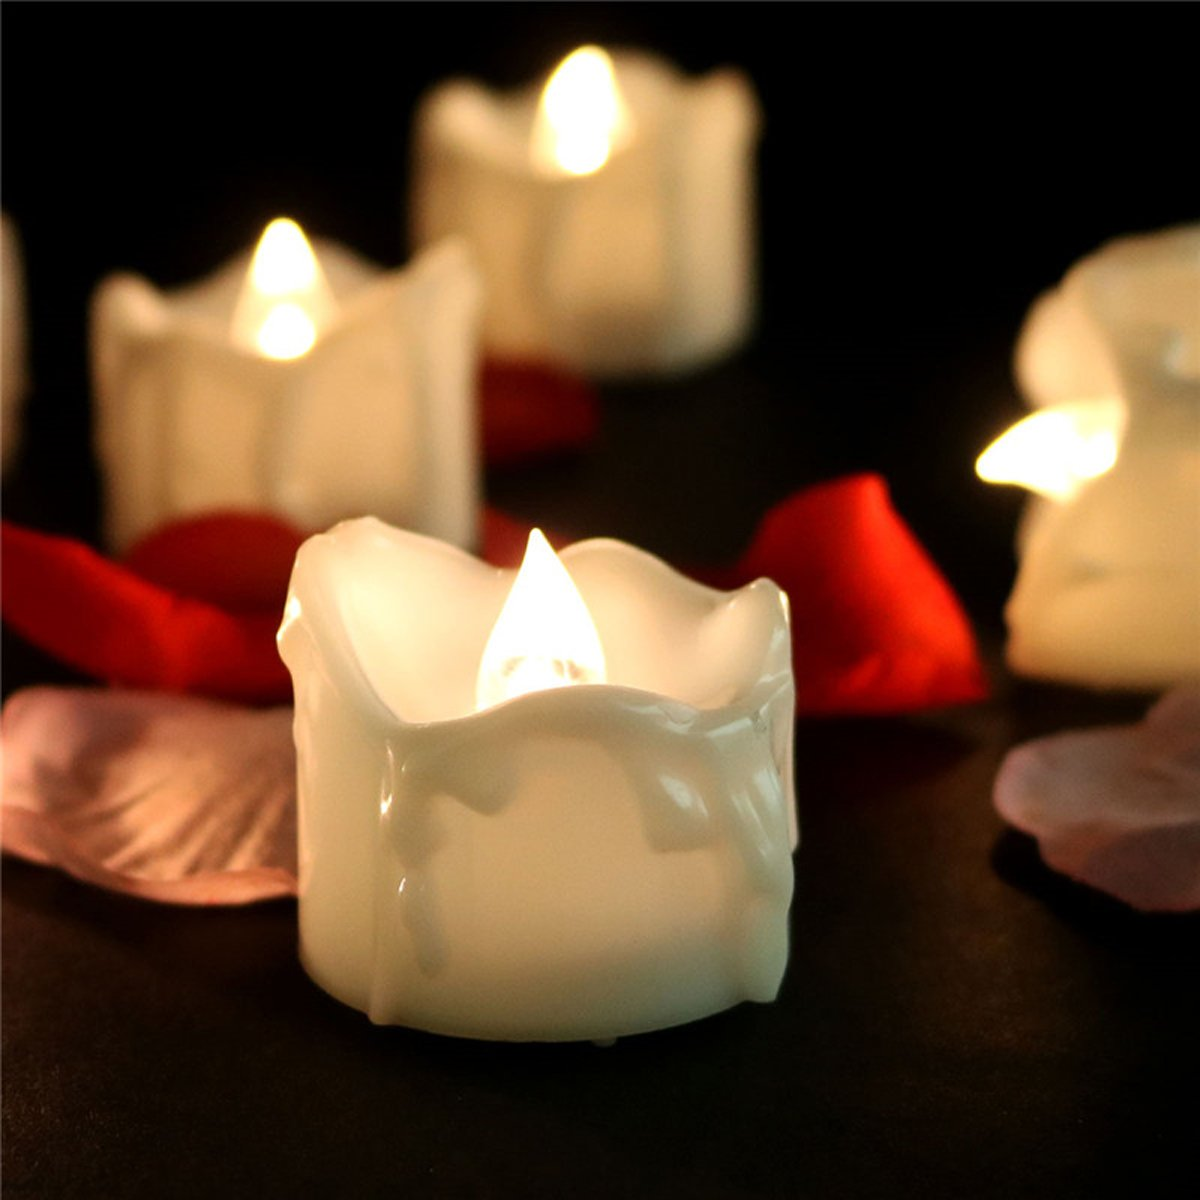 LifeGenius 24 PCS Wax Dripped Unscented Flameless Candles Flickering Warm White Votive Realistic Small Tea lights